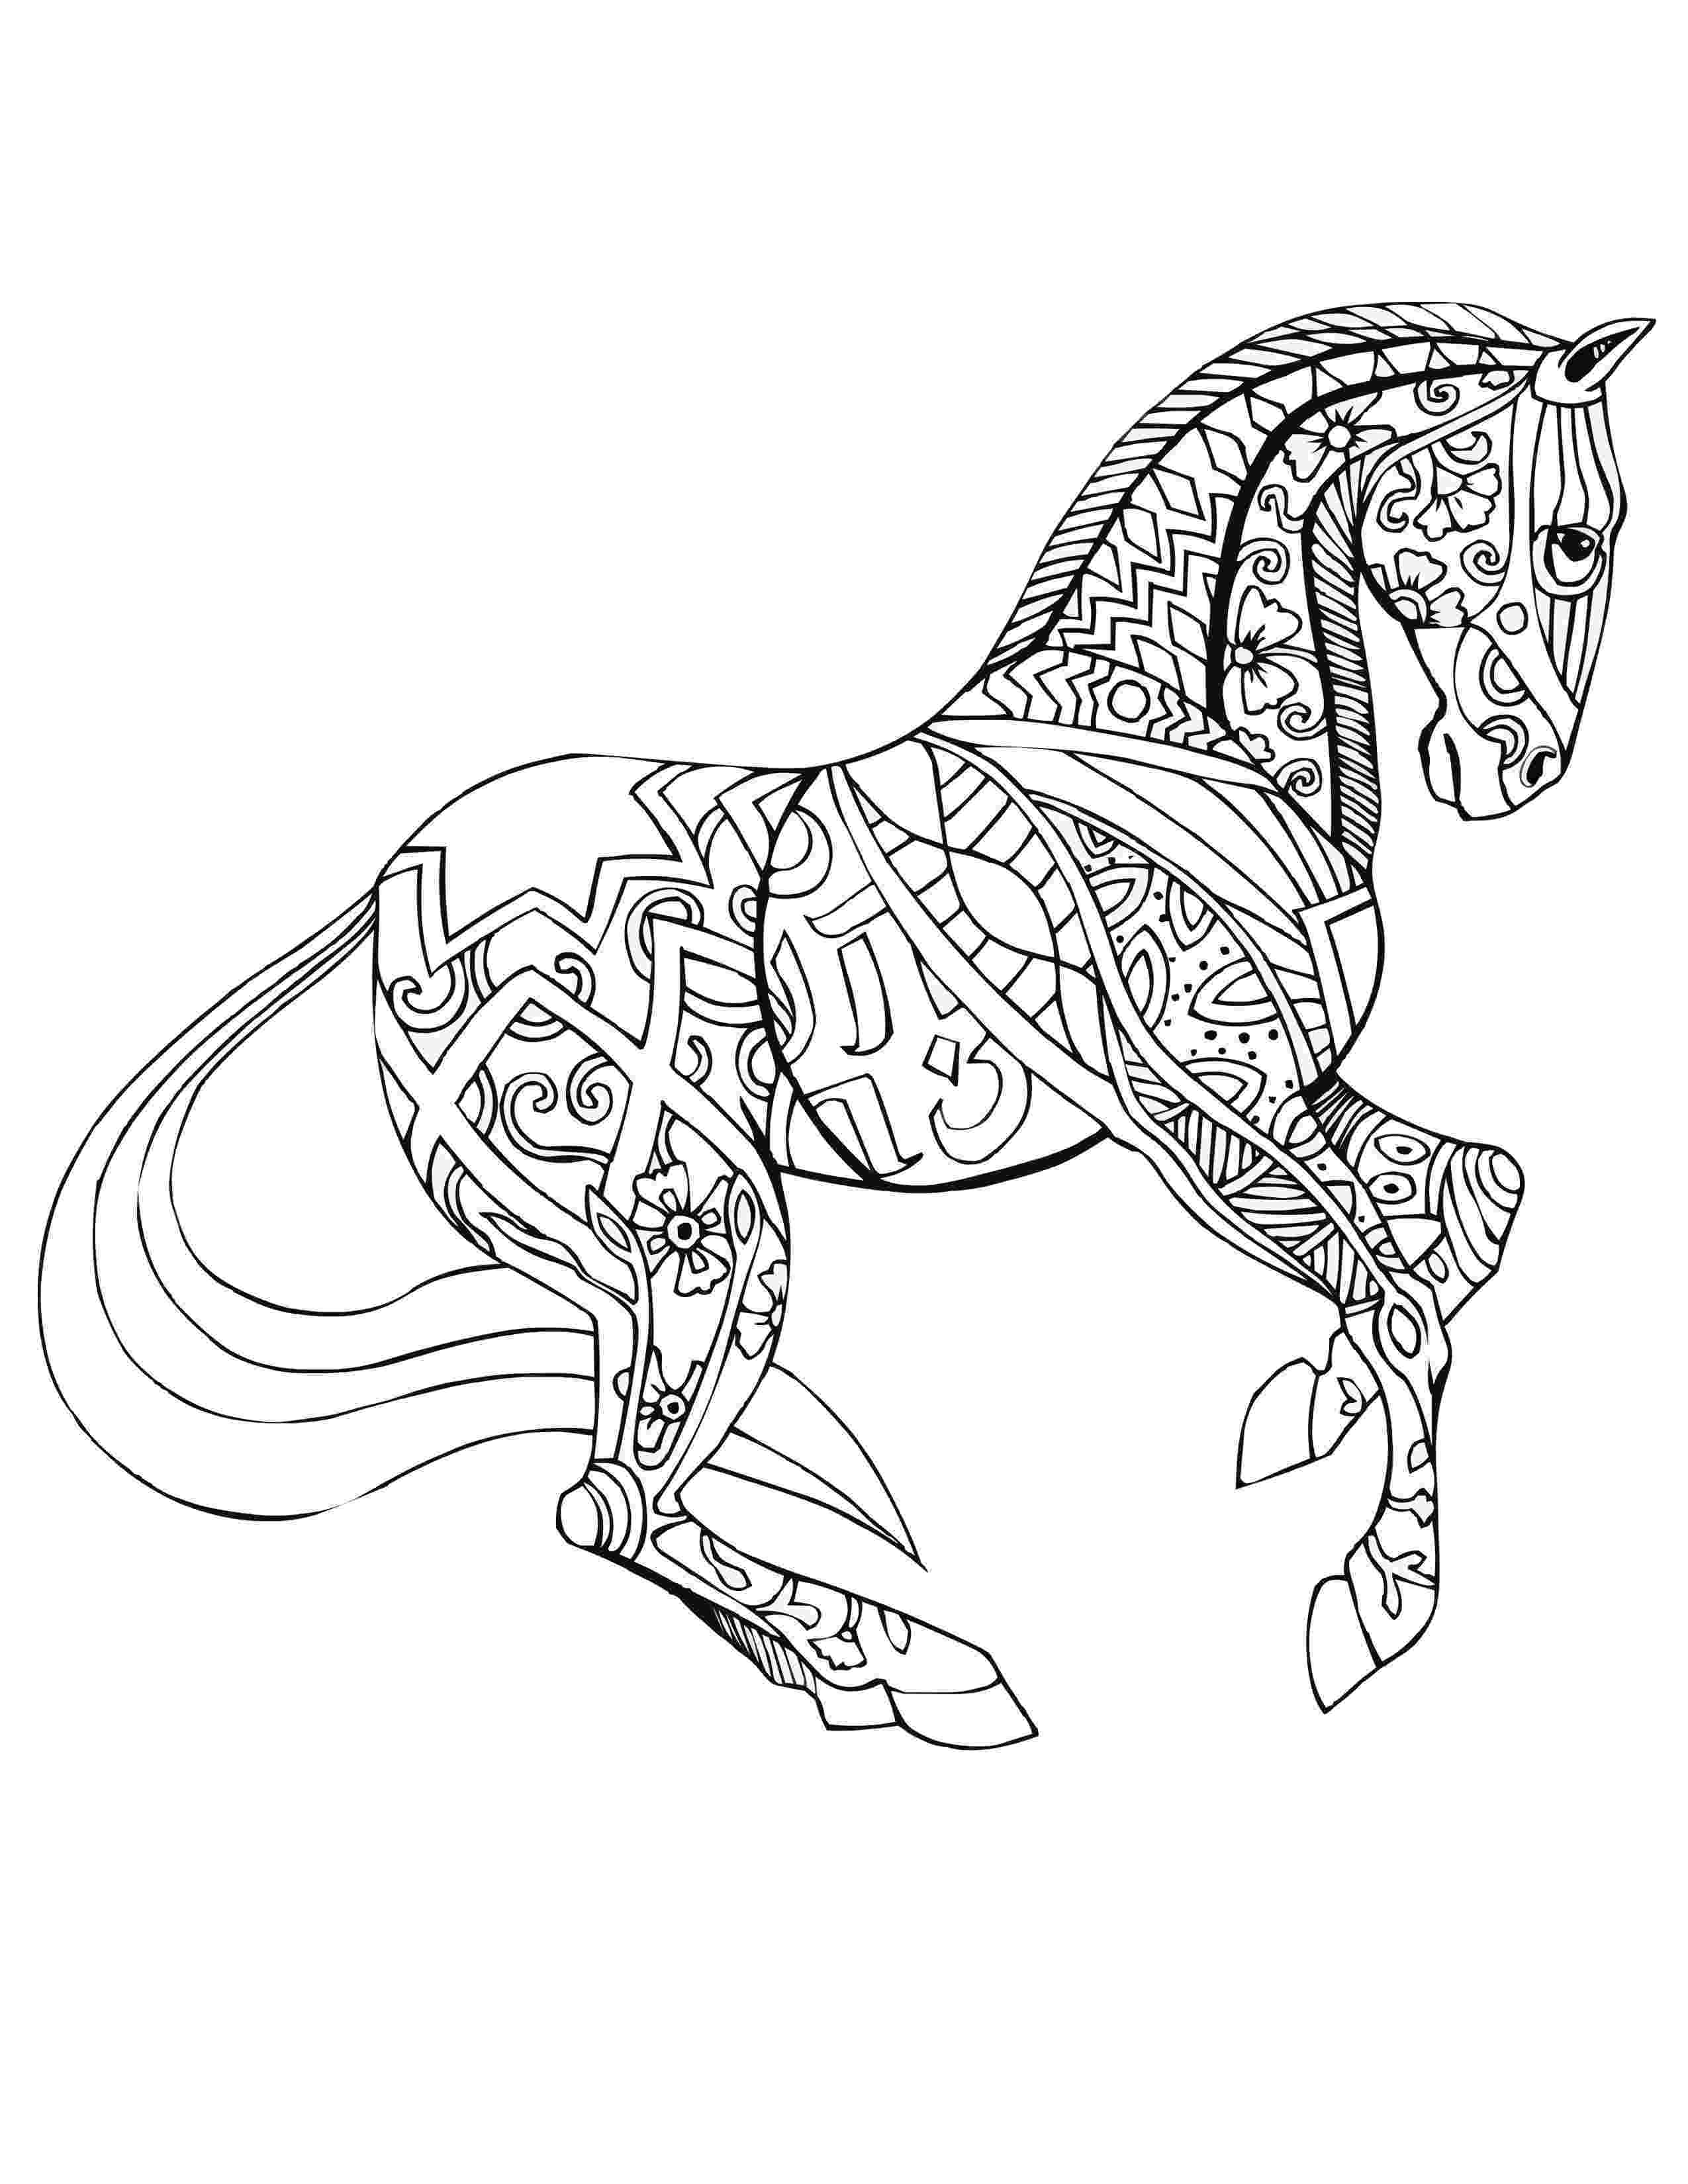 coloring pages of animals horses horse coloring pages 1001 coloringpages animals coloring of pages horses animals